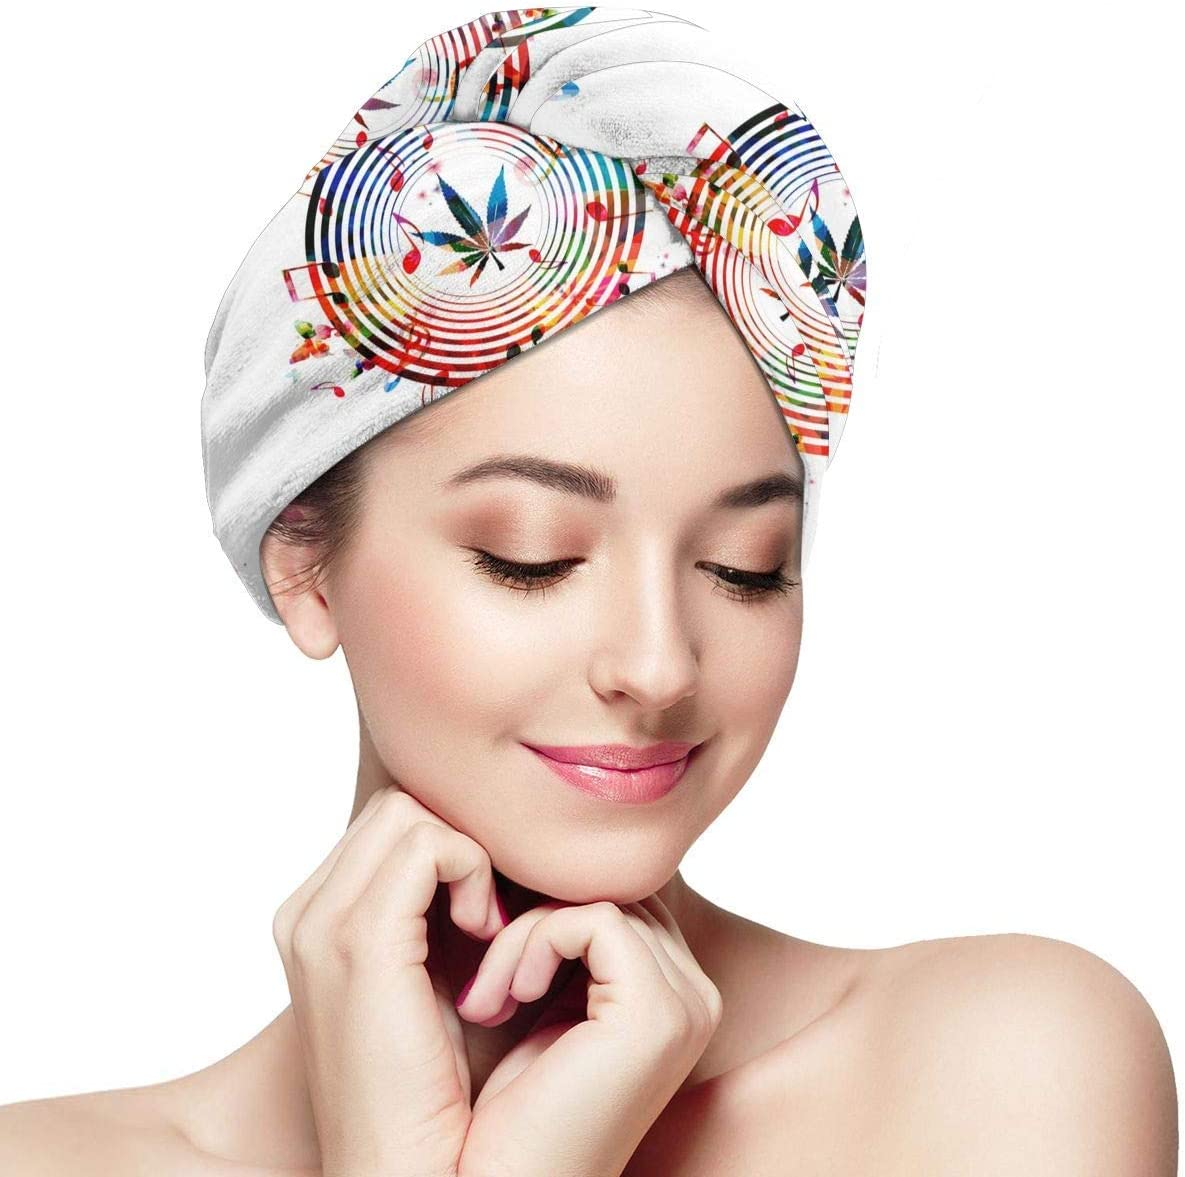 UXZTU Secador de pelo Cannabis Sativa Music Microfiber Dry Hair Hat Shower Caps Head Turban Towel